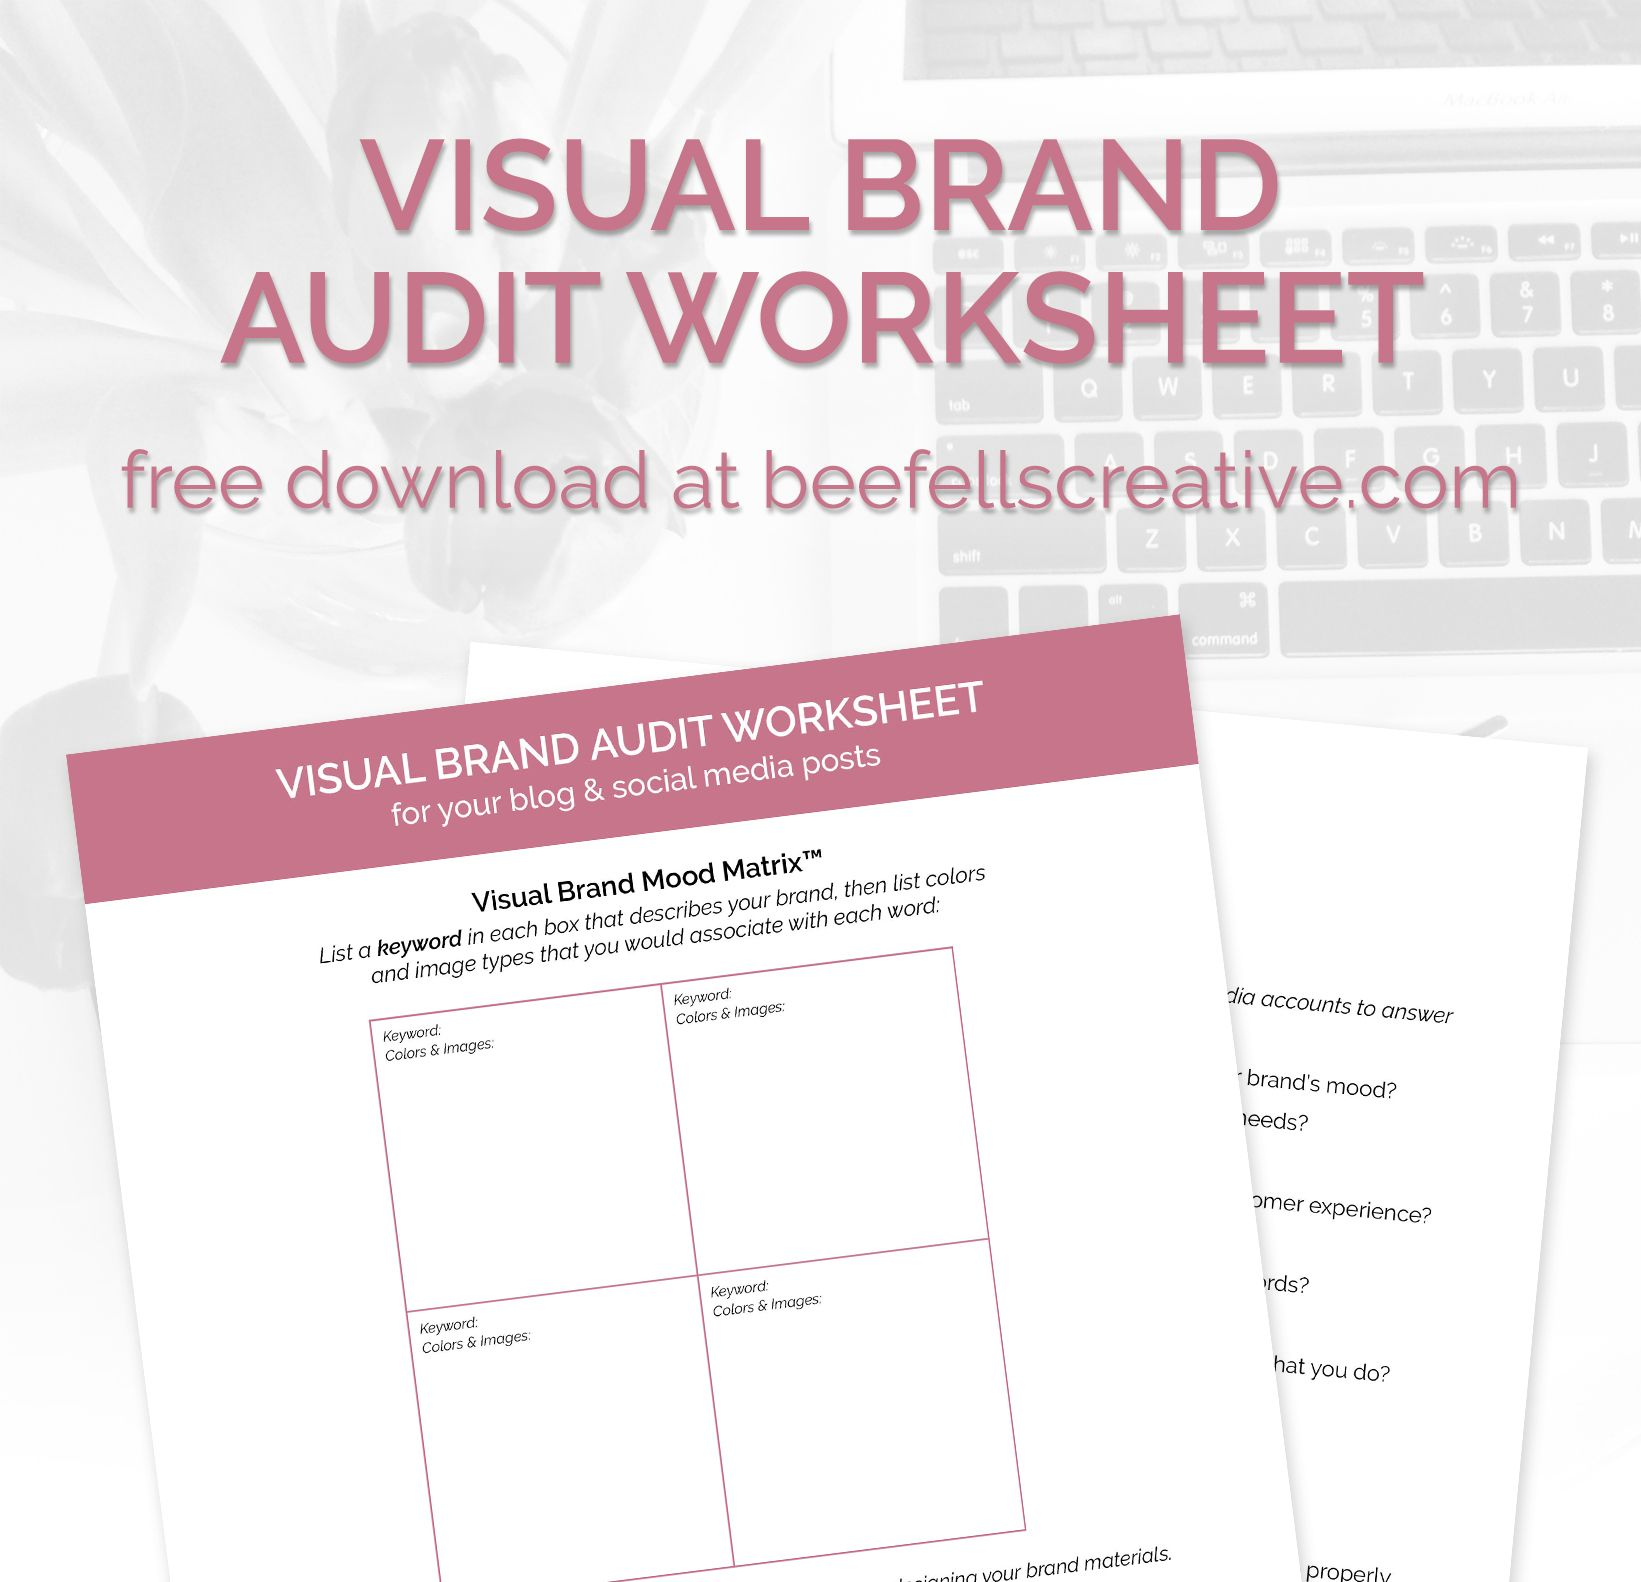 BE INTENTIONAL Every blog & social media post should be a contribution to a greater goal for your brand. The colors that you choose, the images that you post, and the content that you share should all align with your brand identity. Check out beefellscreative.com to get this Visual Brand Audit checklist for FREE. This tool will help you review your blog & social media posts to ensure that you are utilizing the awesomeness of your brand identity!